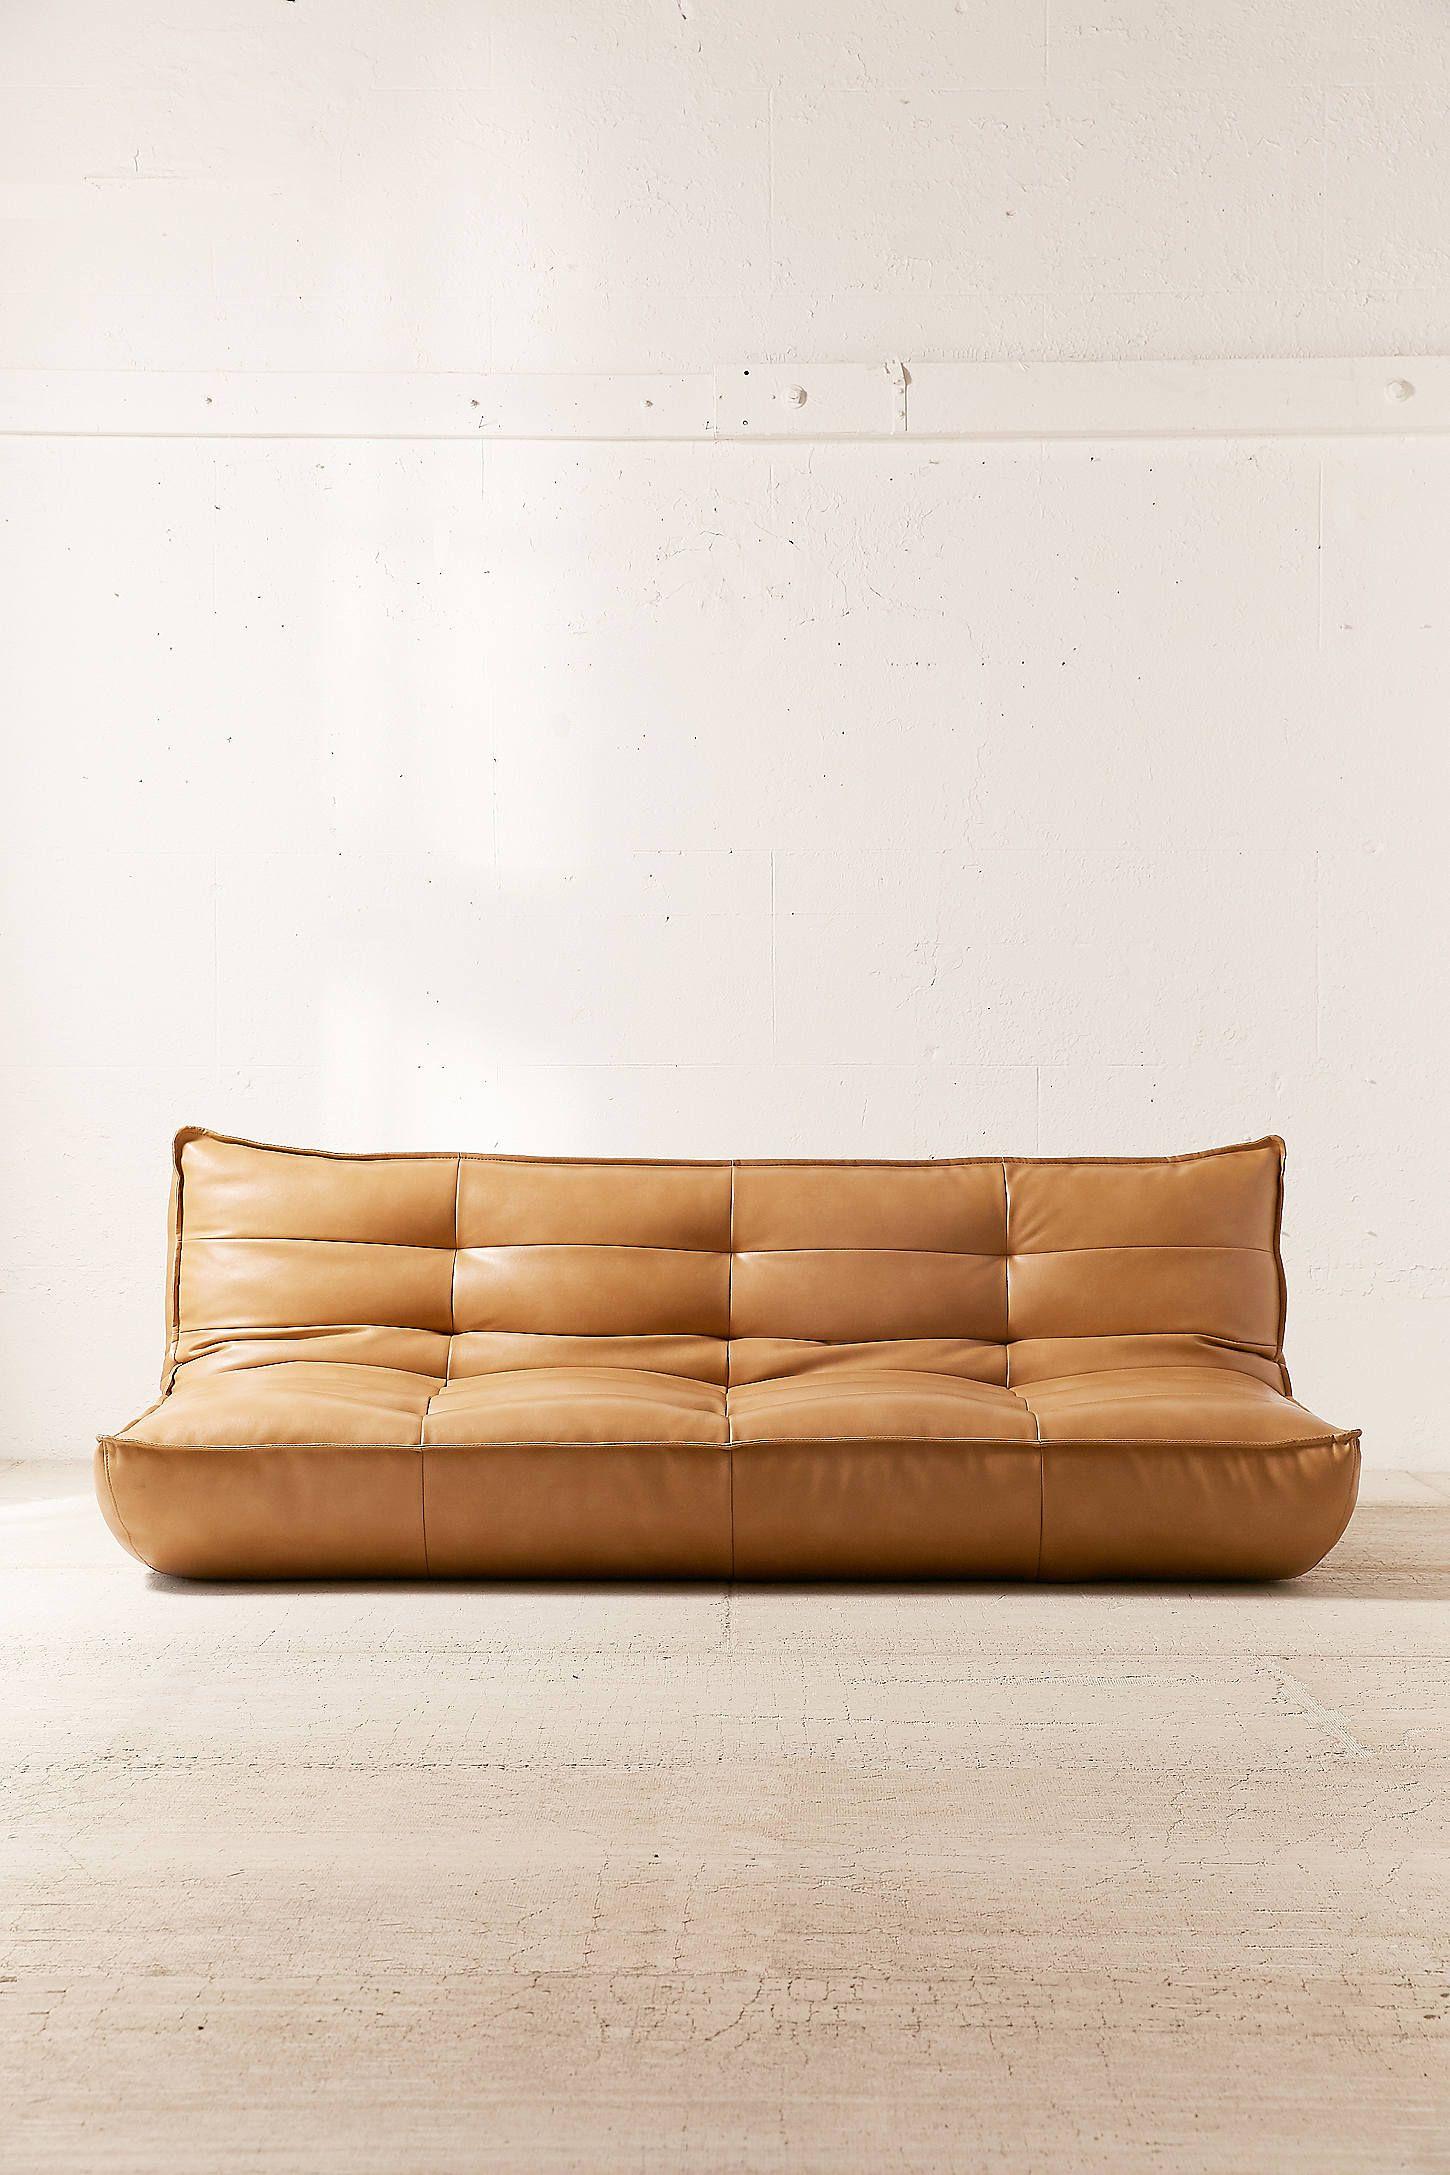 Greta Recycled Leather Xl Sleeper Sofa With Images Leather